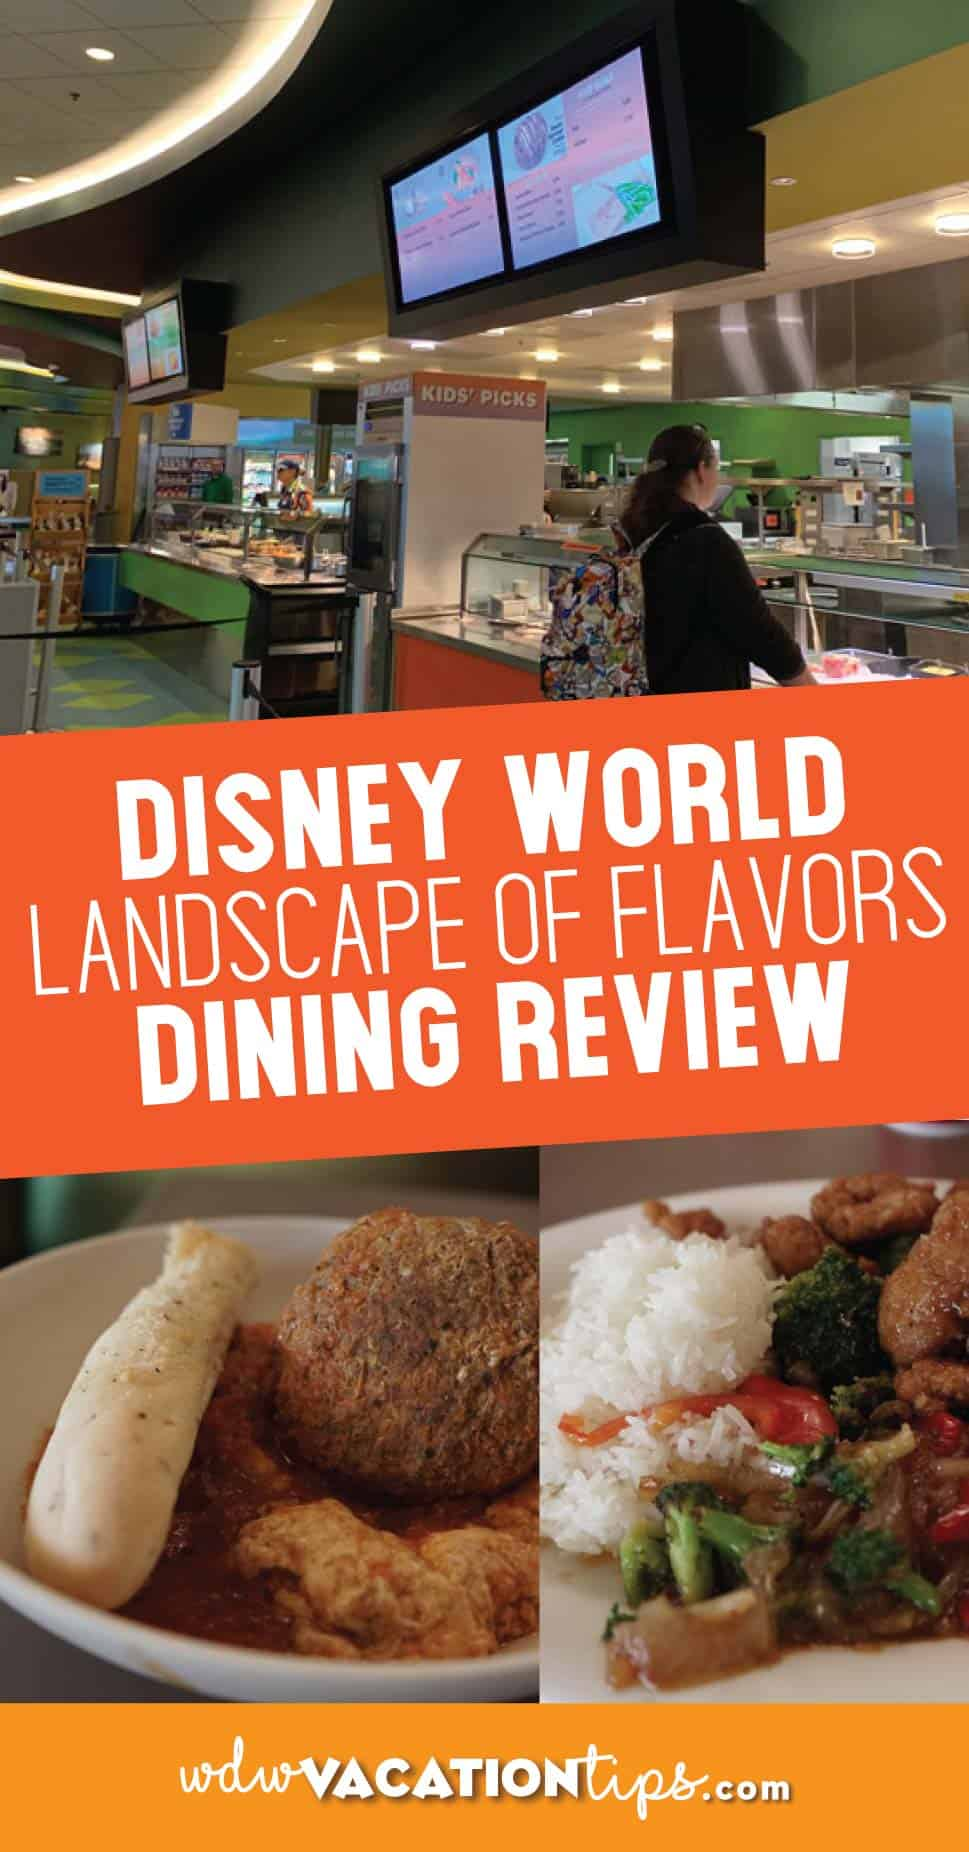 Landscape of Flavors Dining Review